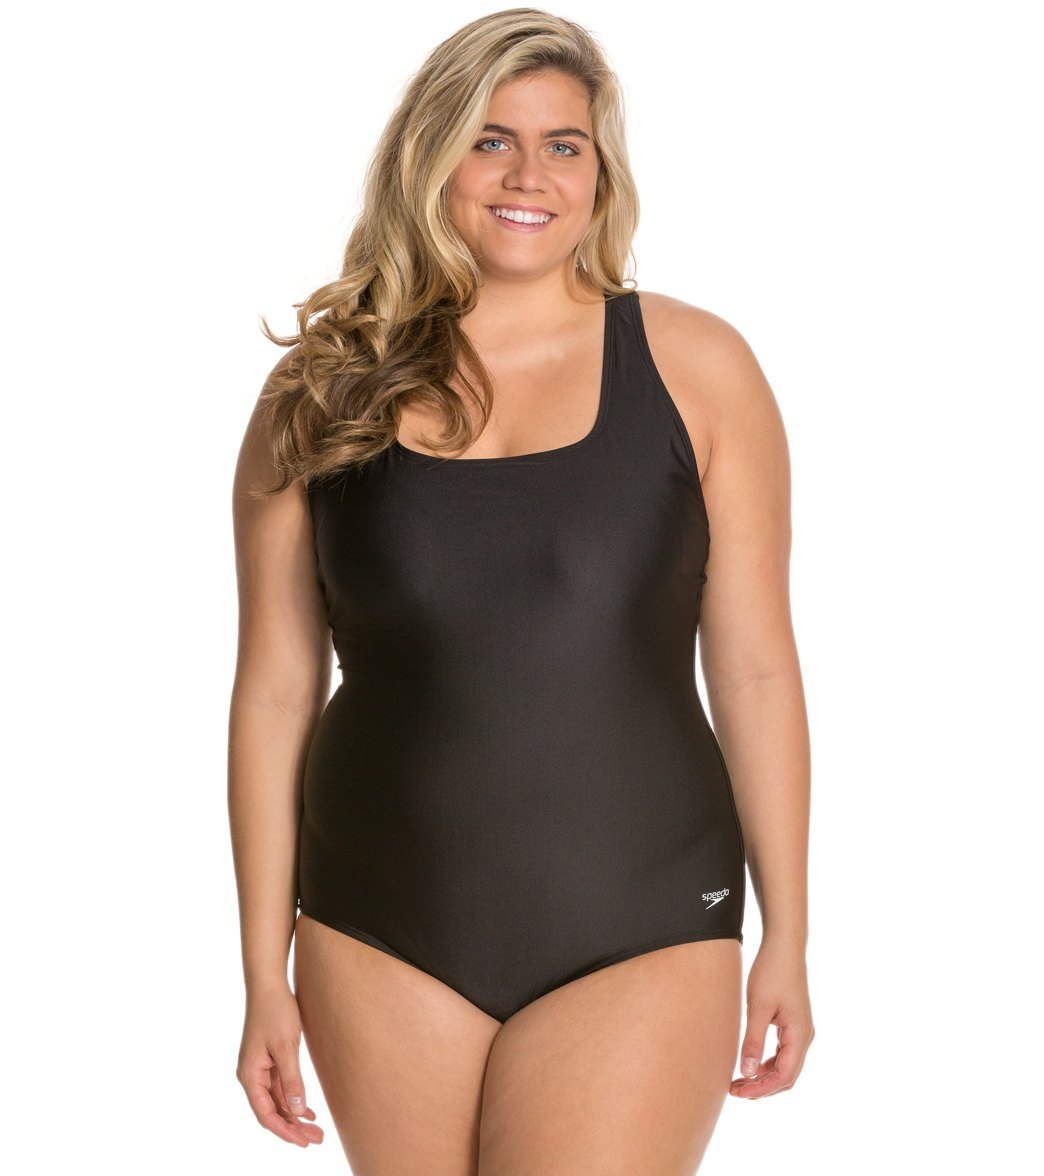 Speedo Moderate Ultraback Plus Size One Piece